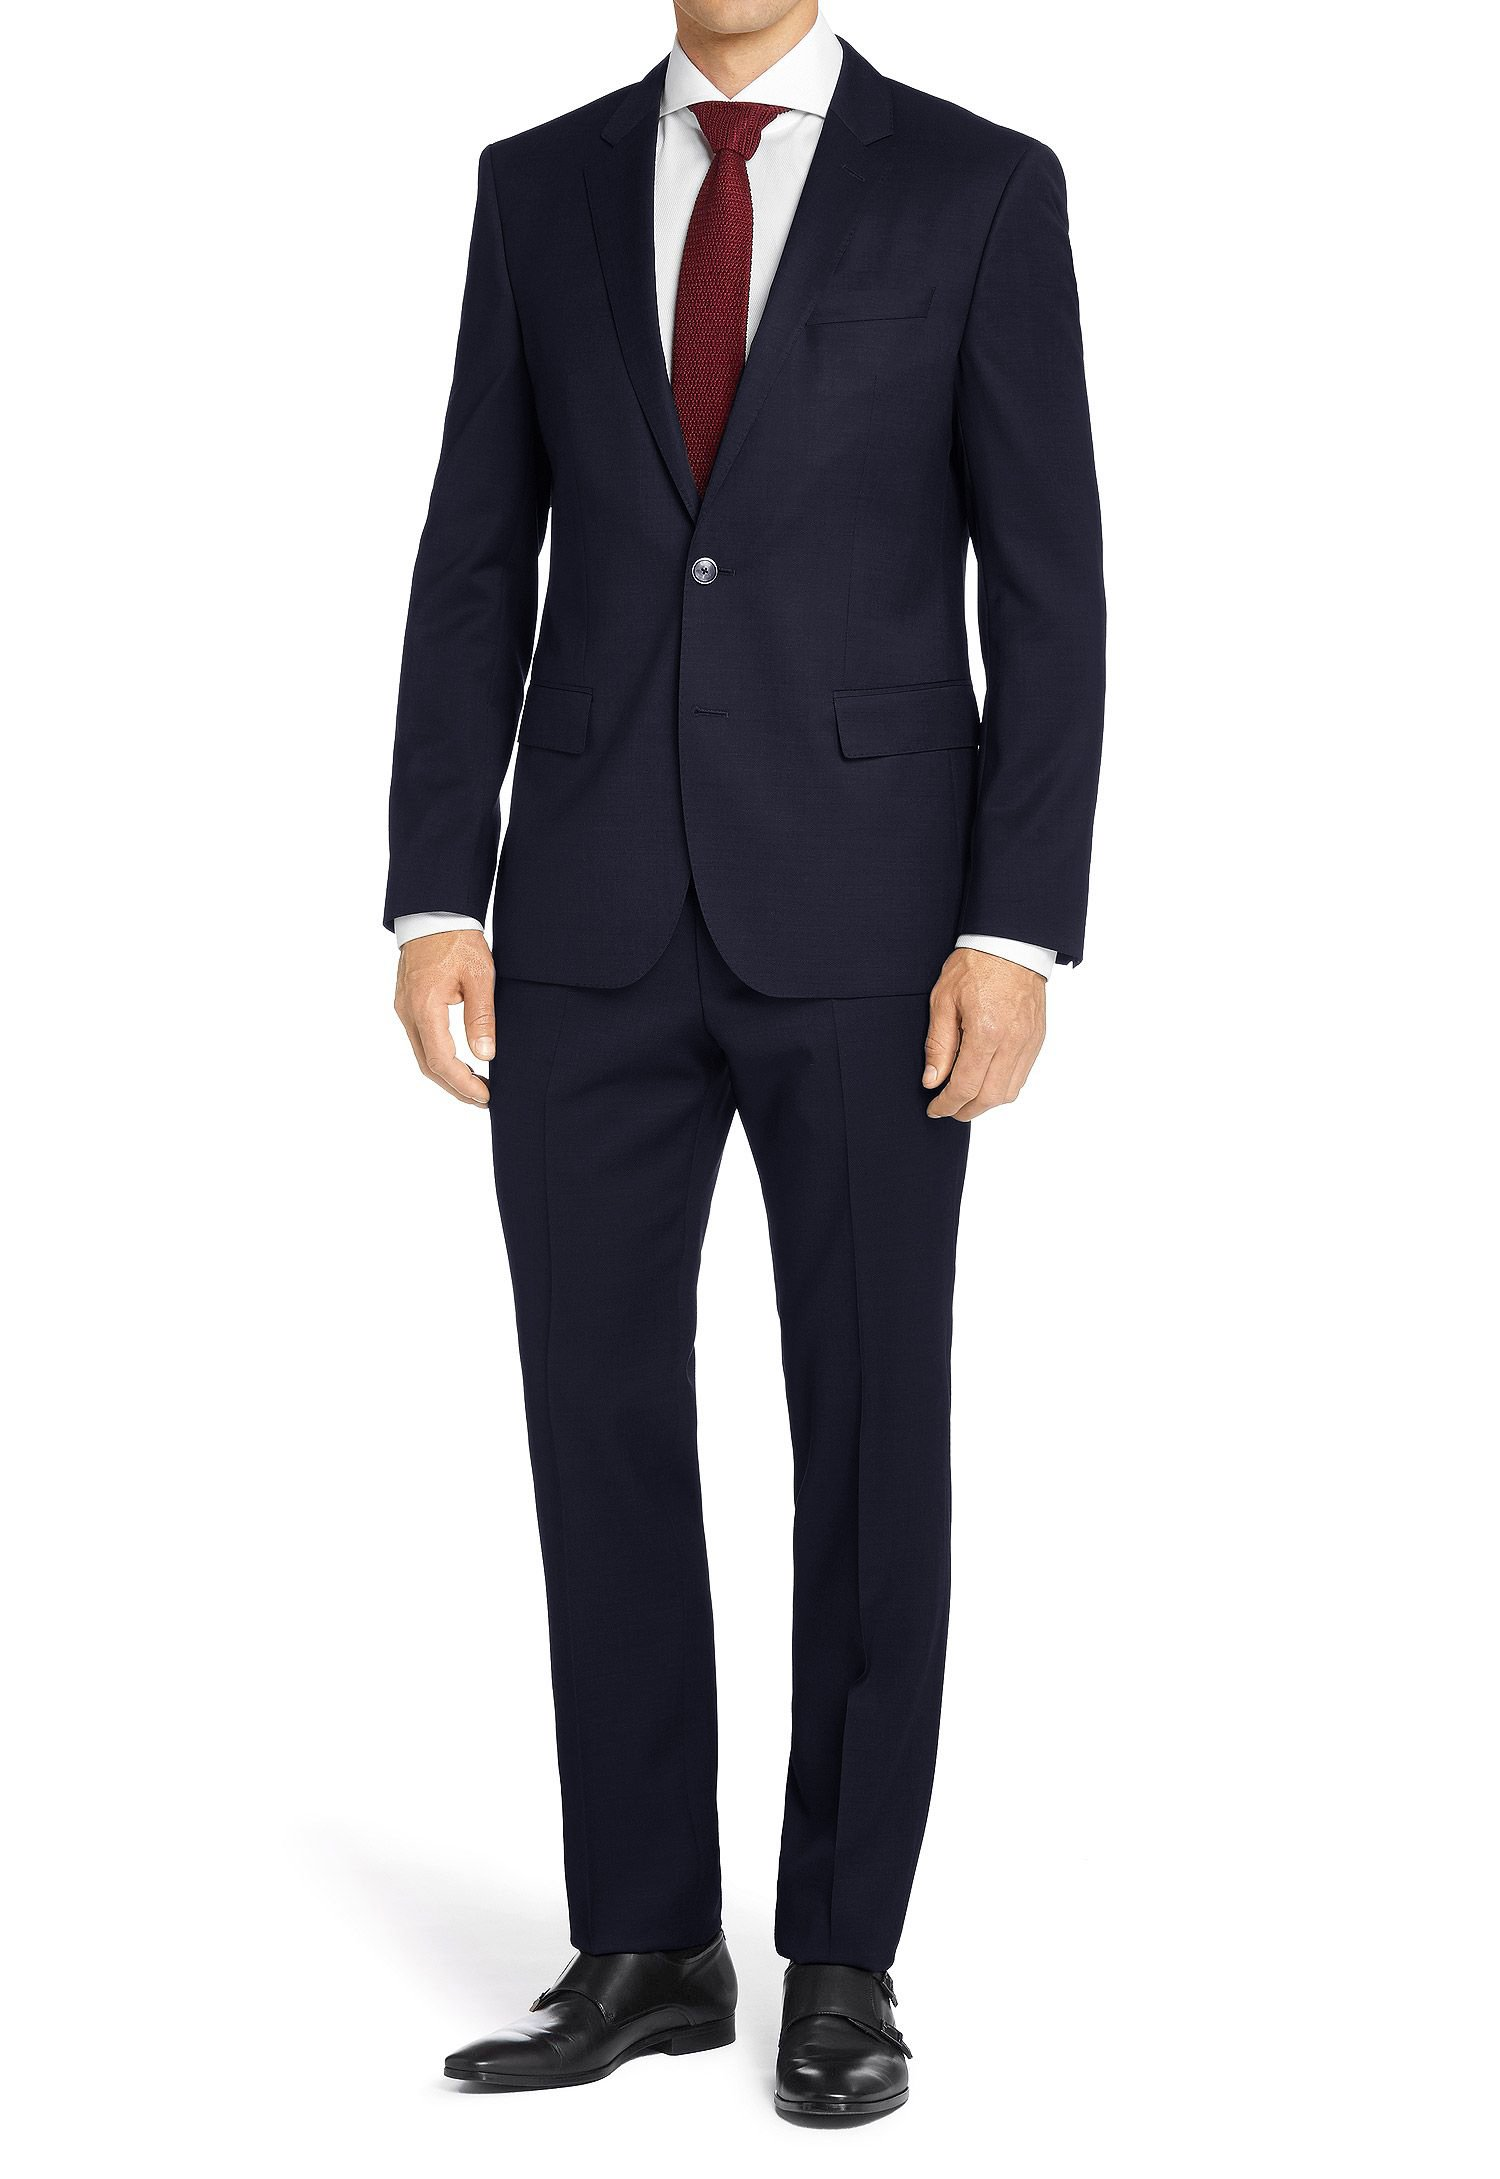 MDRN Uomo Mens Classic Fit 2 Piece Suit, Navy, Size 50Lx44W